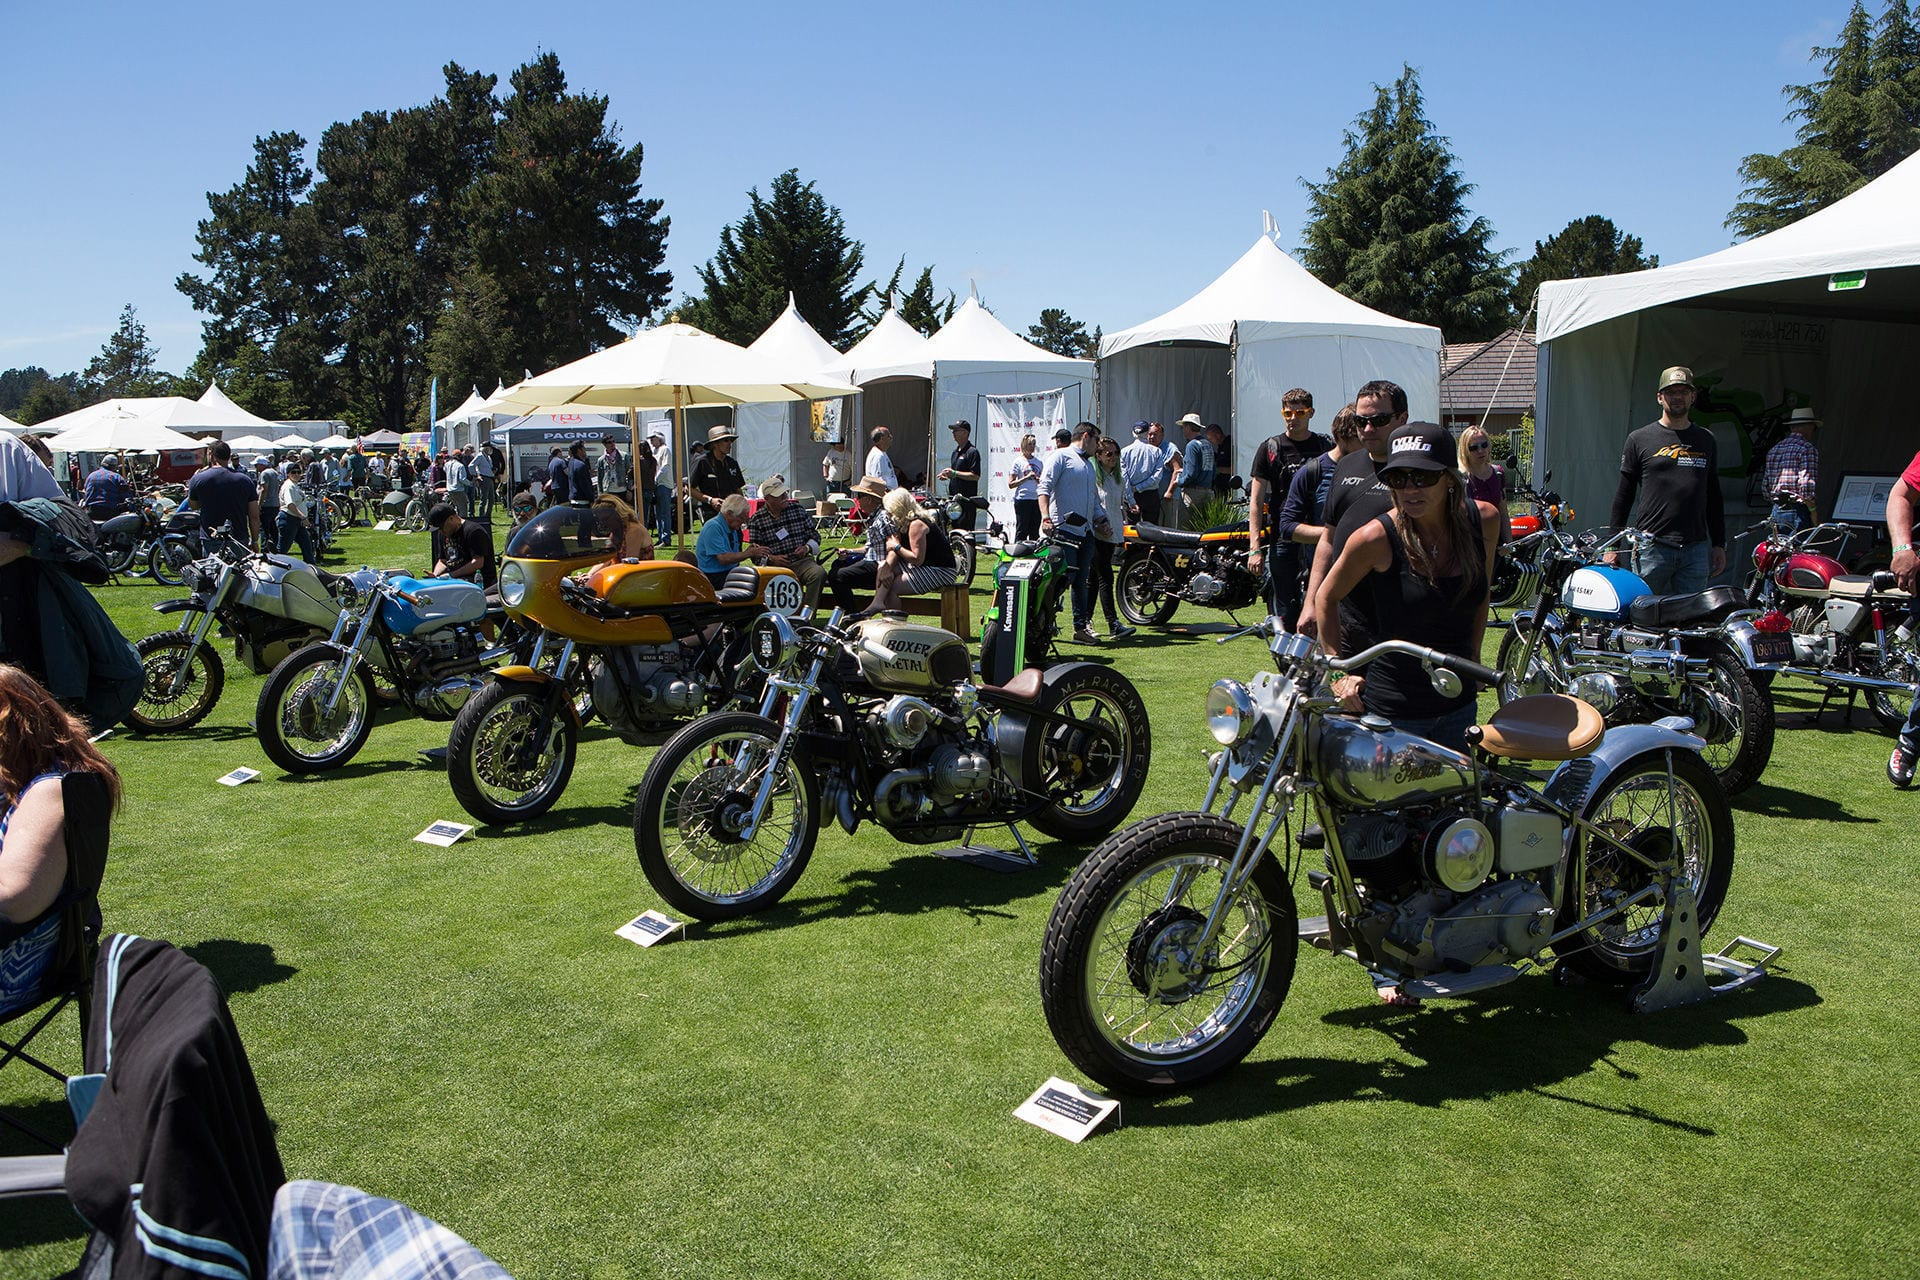 9th Annual Quail Motorcycle Show in Monterey this Weekend